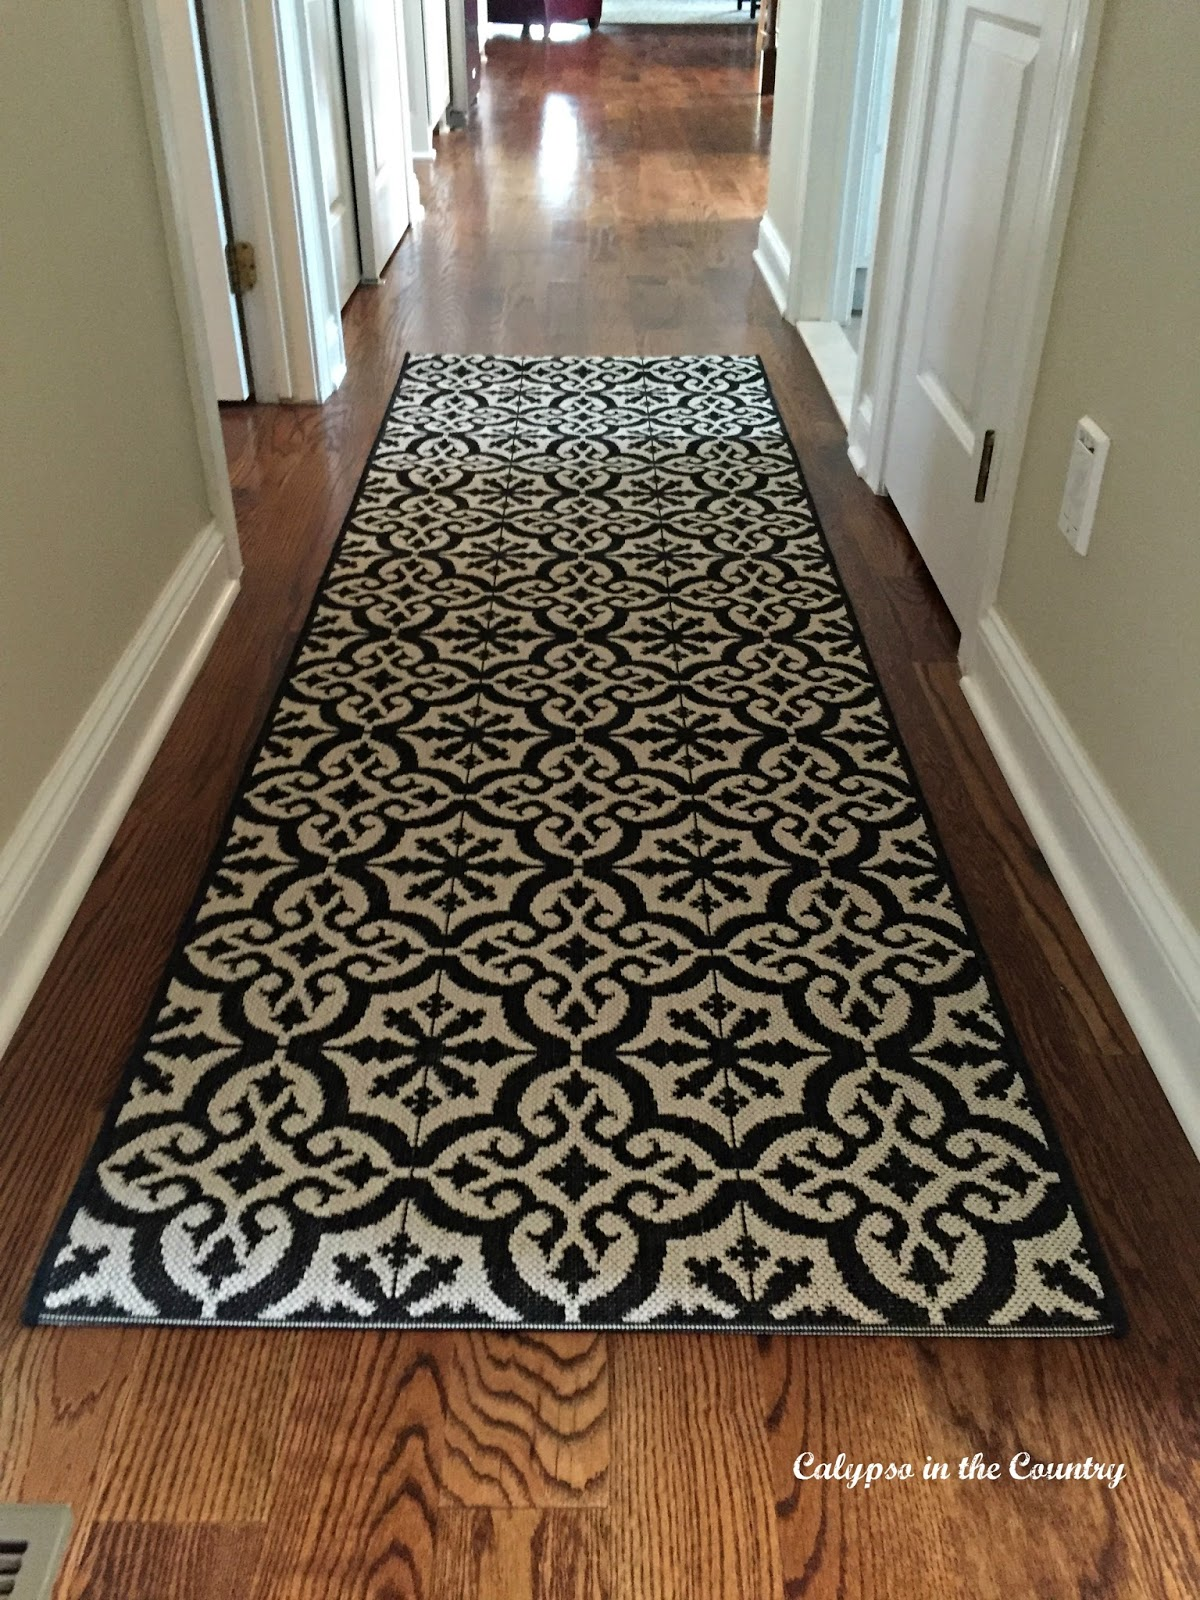 the new tile rug and my search for a